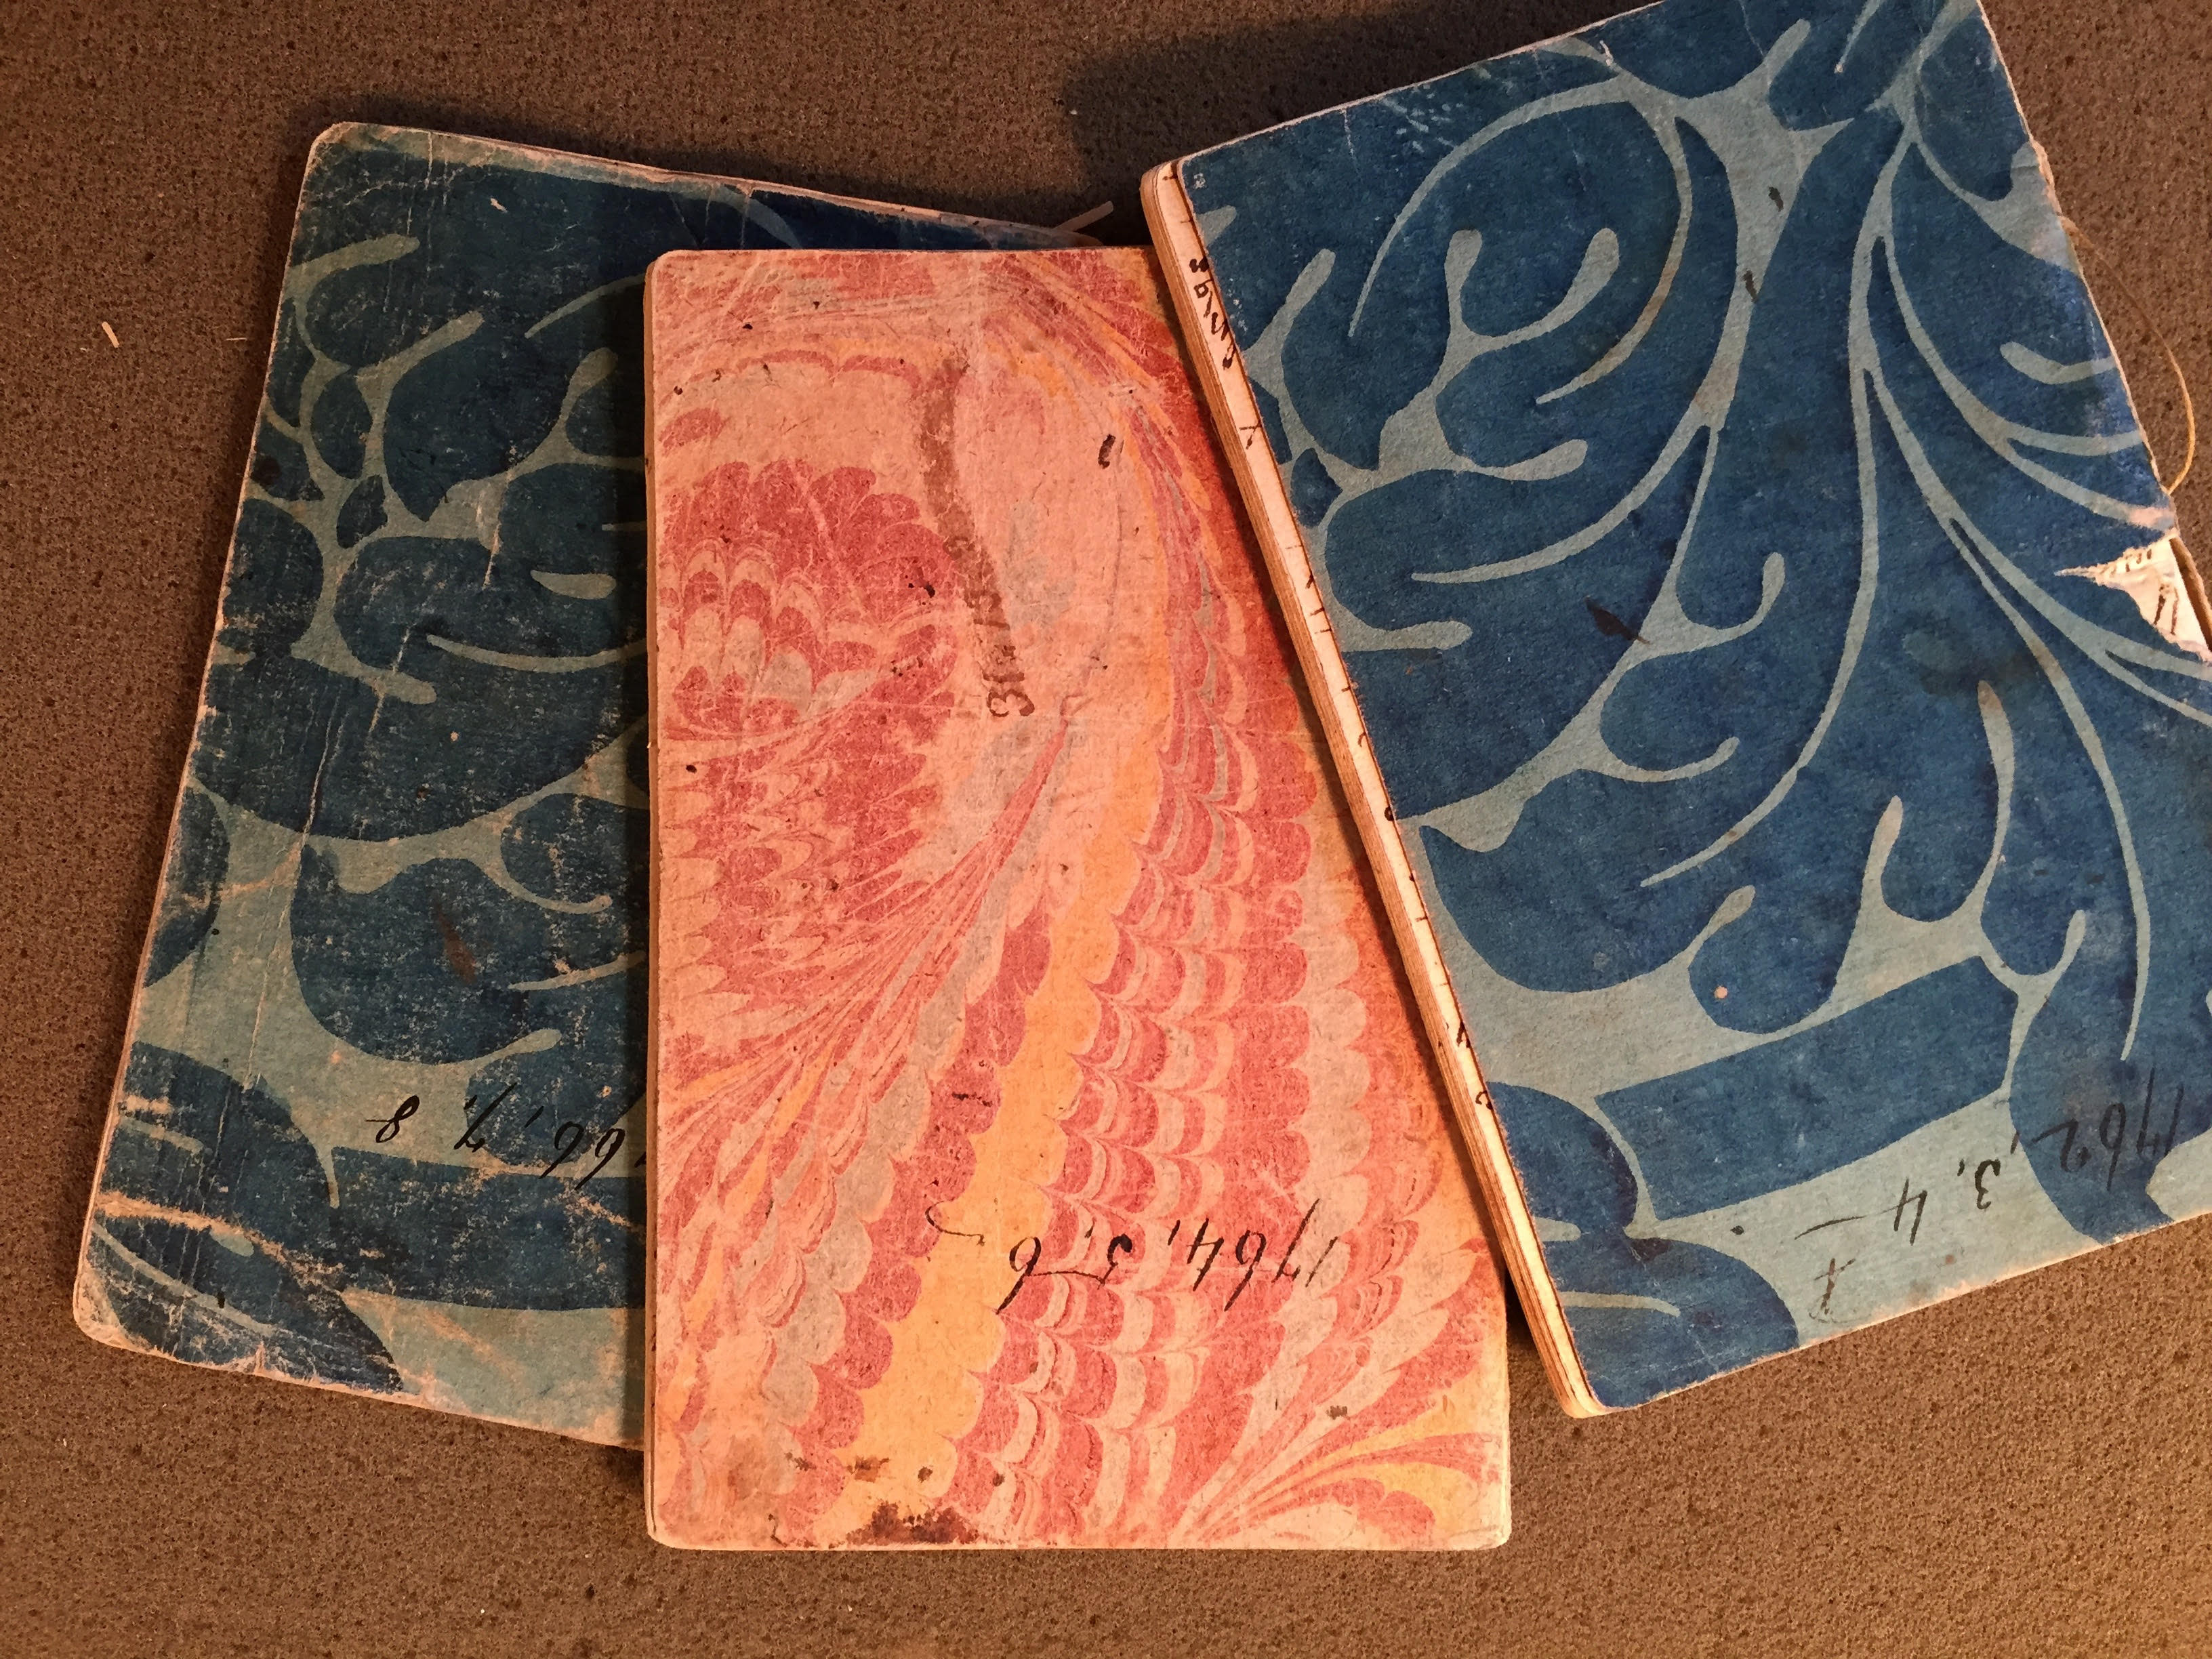 Two blue diaries, one pink diary.